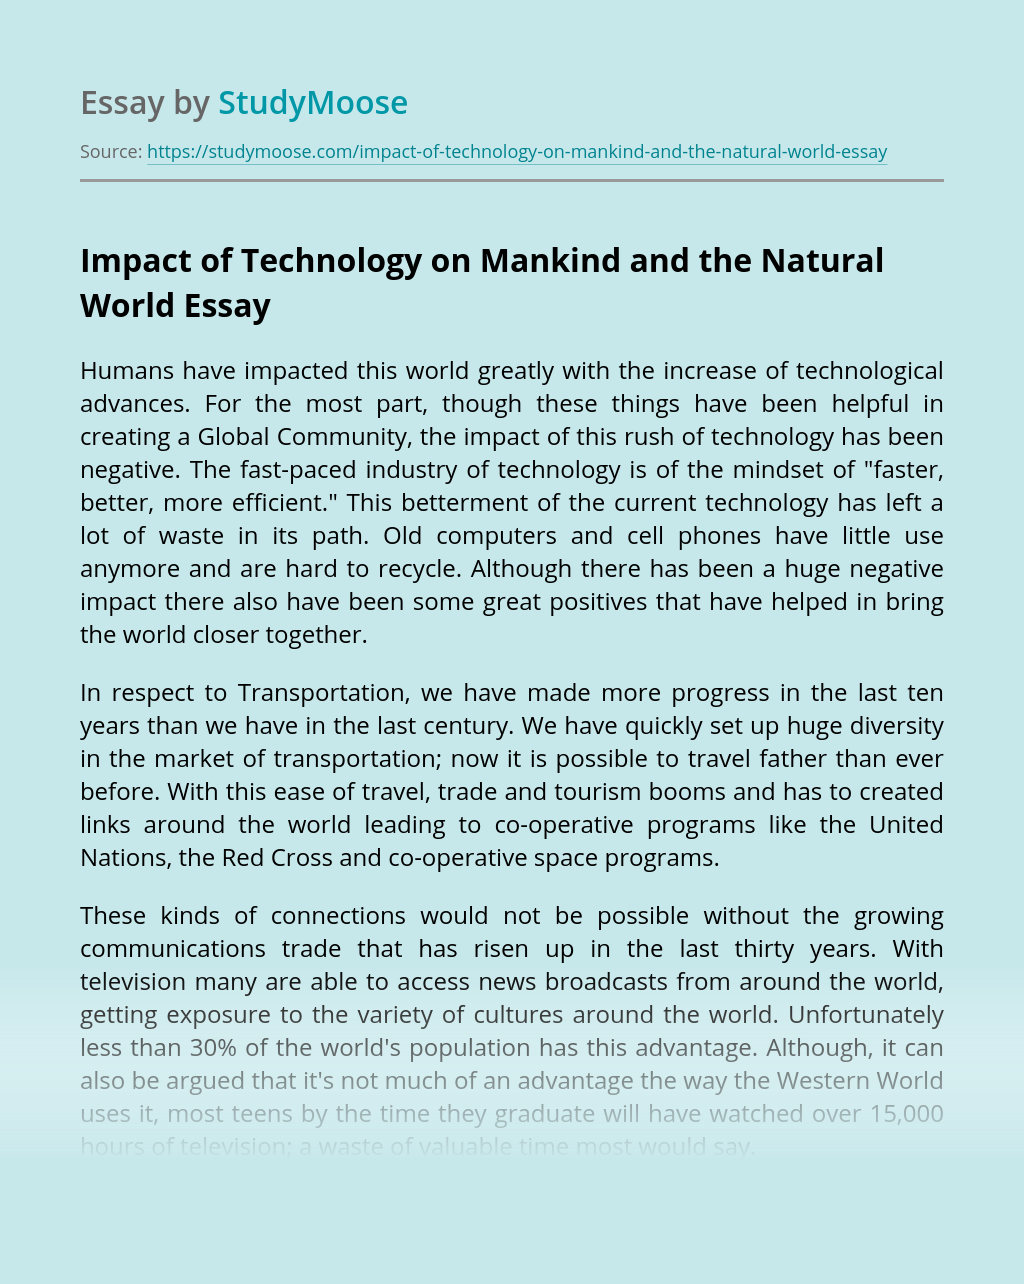 Impact of Technology on Mankind and the Natural World